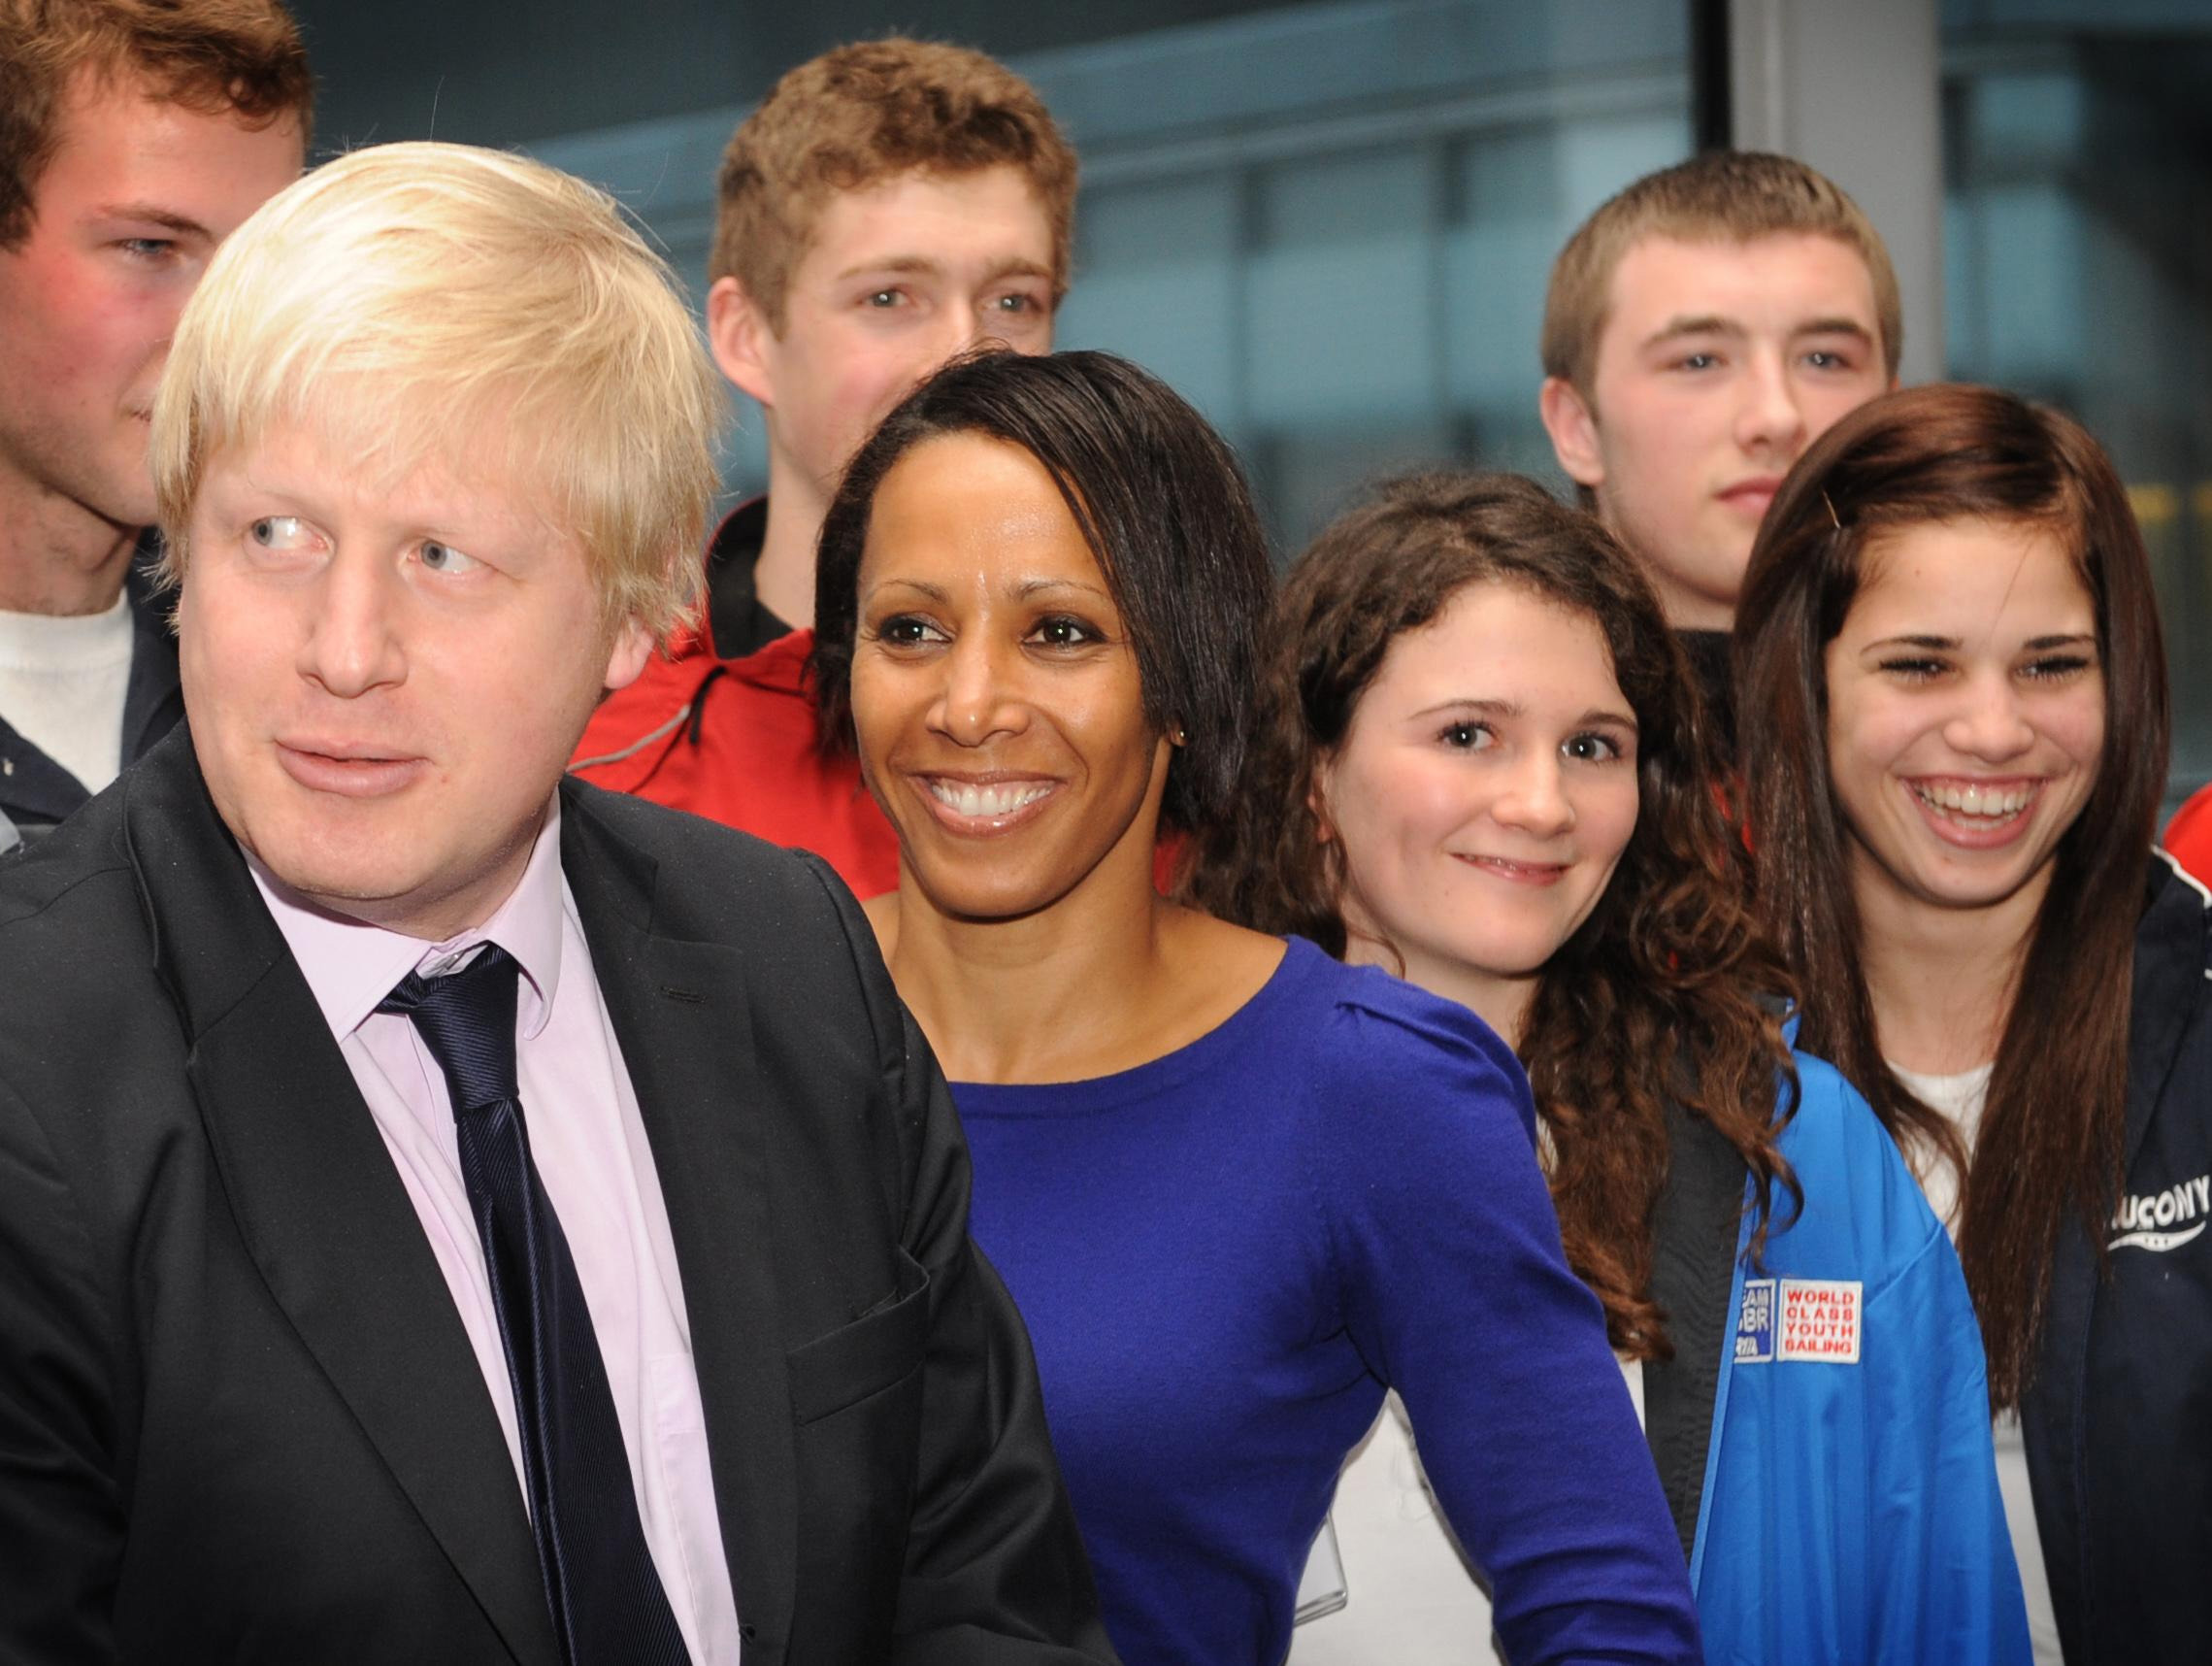 London Mayor Boris Johnson (left)  meets Olympic hopefuls, along with Dame Kelly Holmes (second left), where he announced that 30 young athletes would receive grants of 1,000 each to help them reach their potential by the 2012 Olympics.